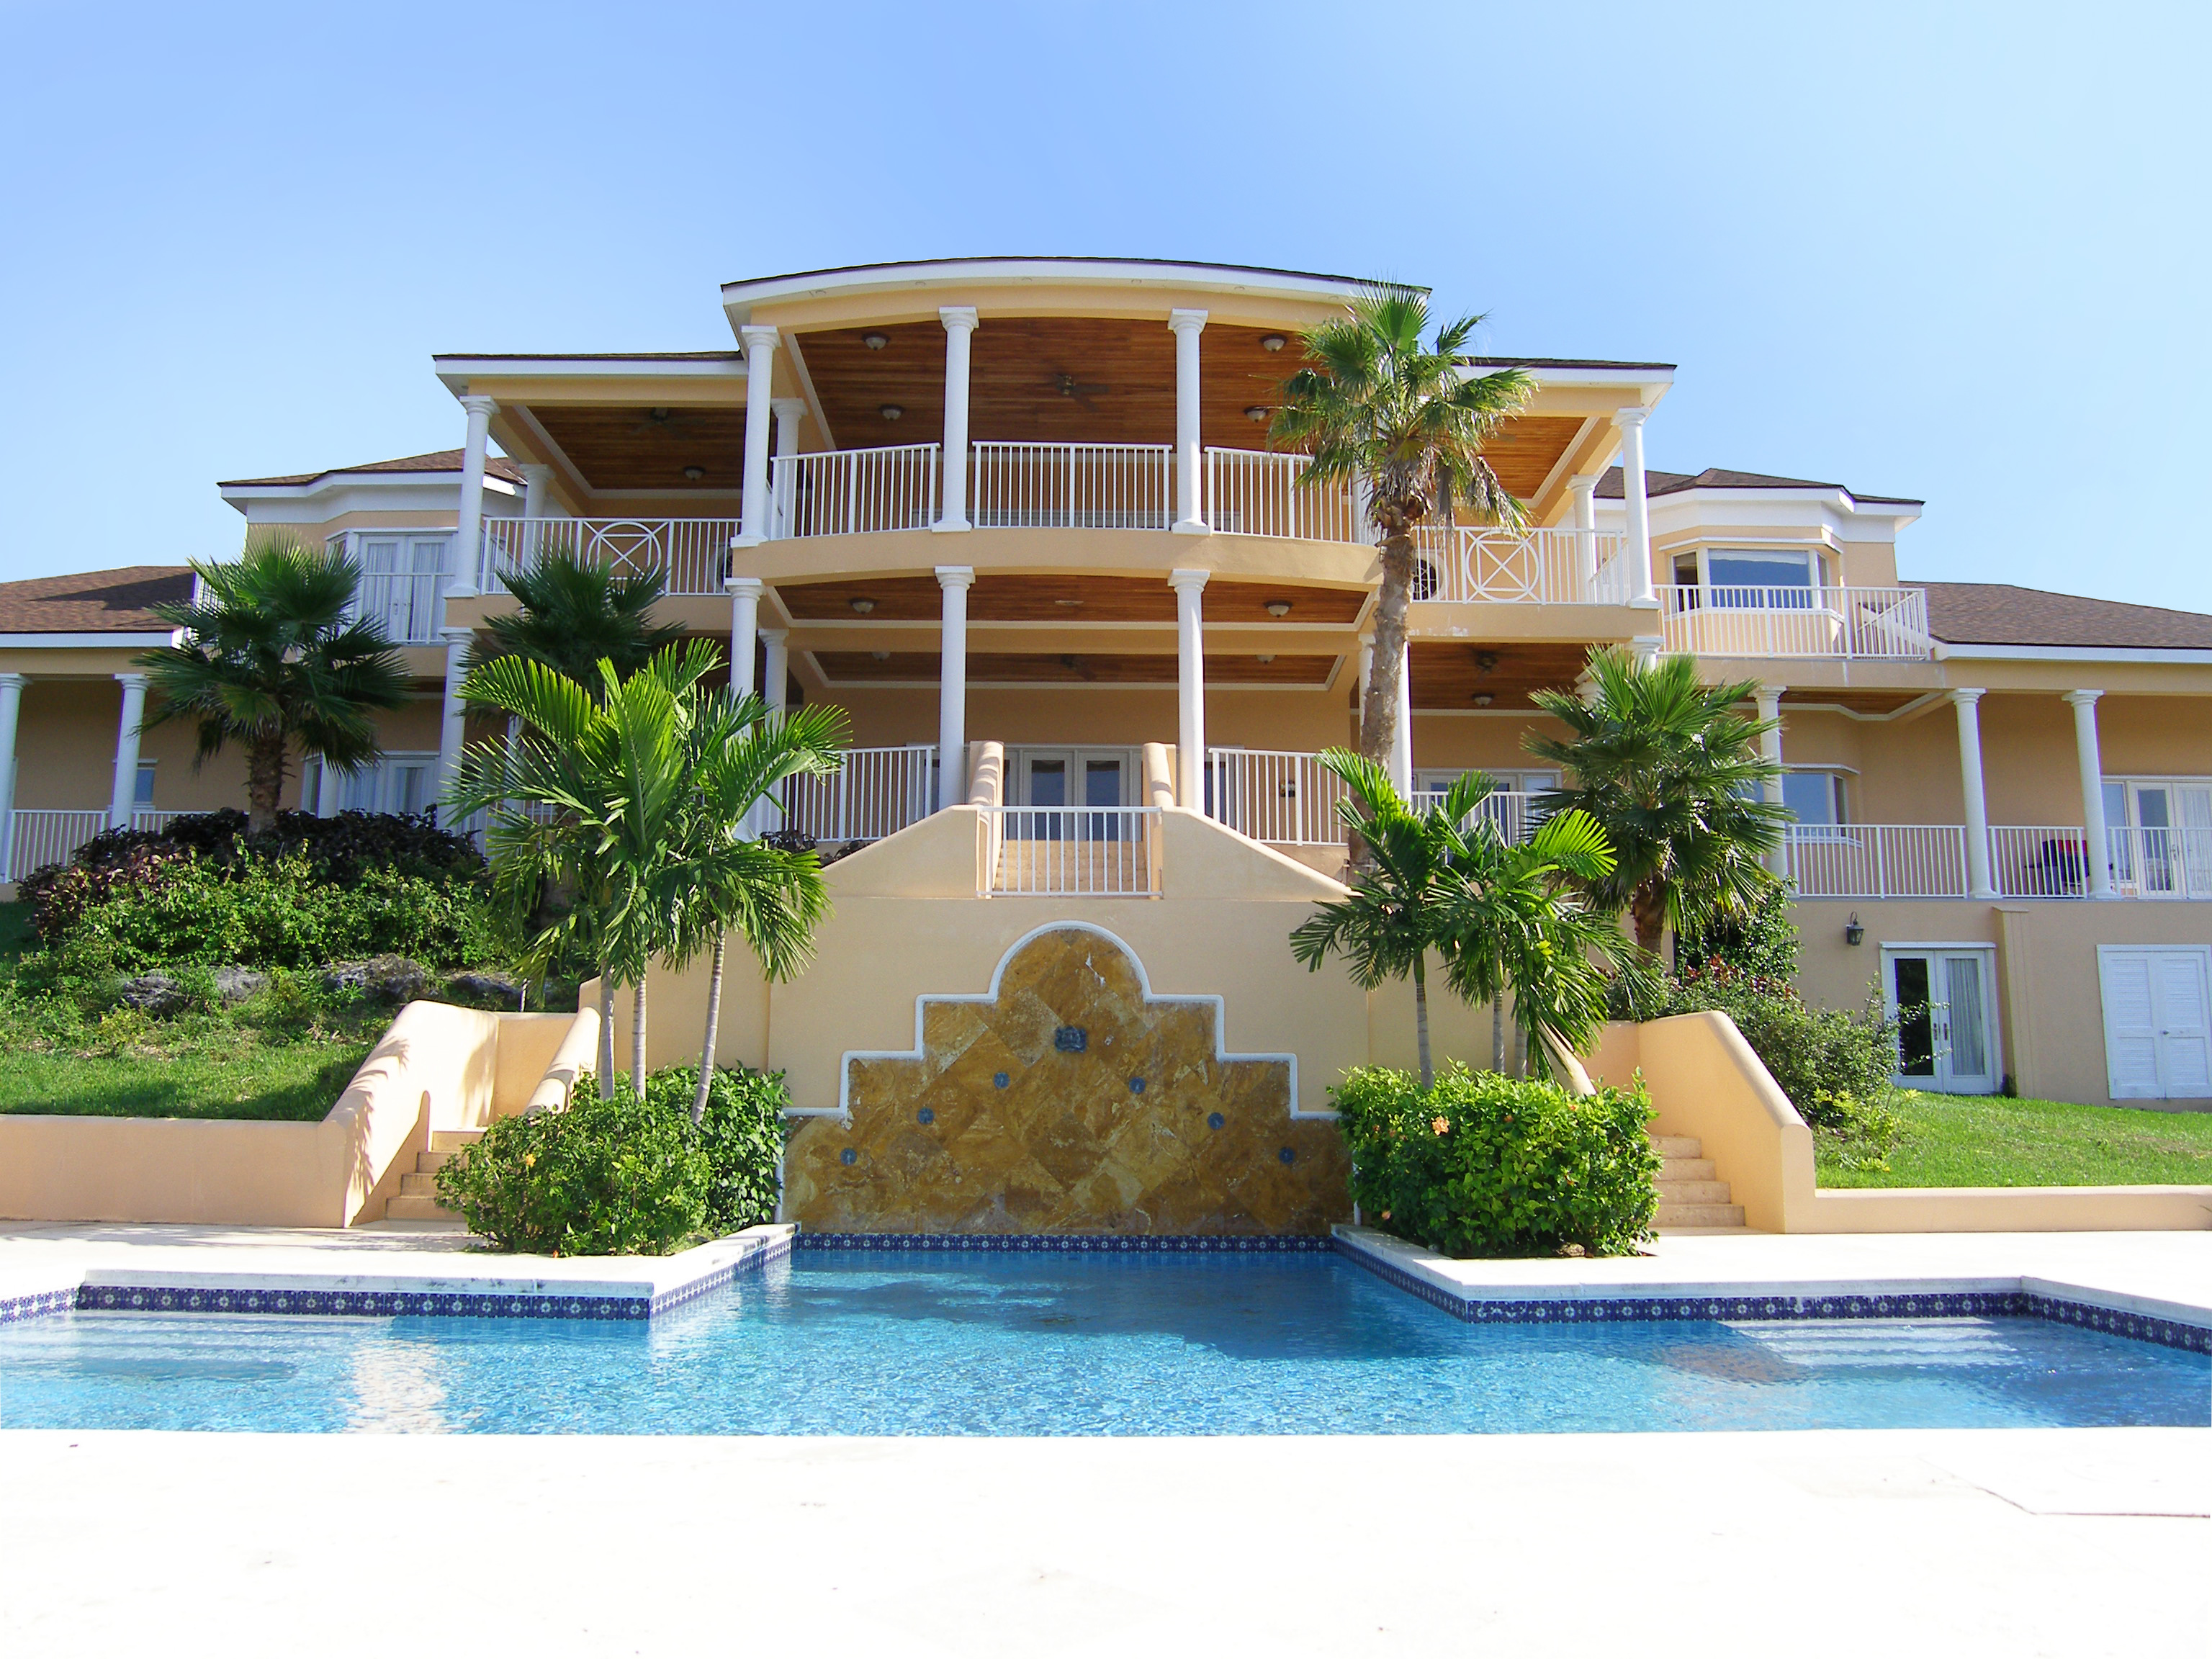 Single Family Home for Rent at Top O The Cay in Lyford Cay Lyford Cay, Nassau And Paradise Island 0 Bahamas